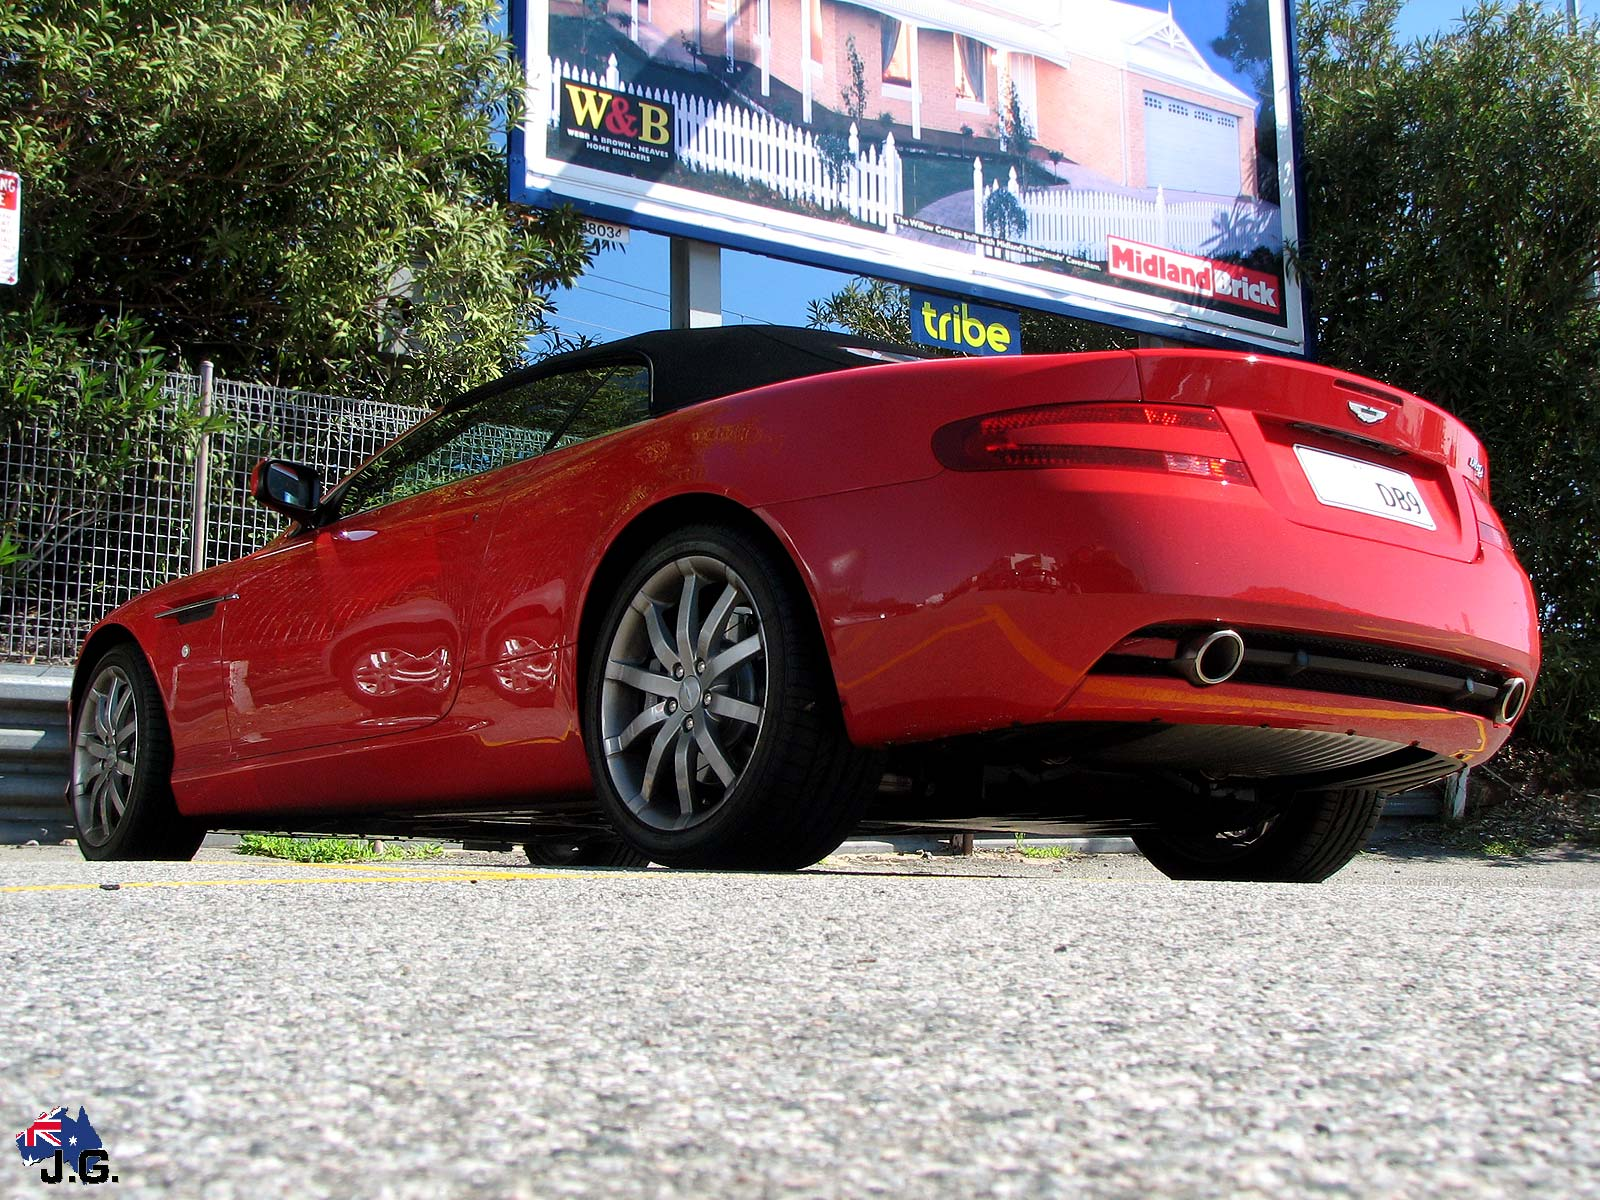 aston martin db9 volante (28) JENNIFER LOPEZ GETS SUED & SUPOENAED AT THE SAME TIME + CANDIDS OF HER ...